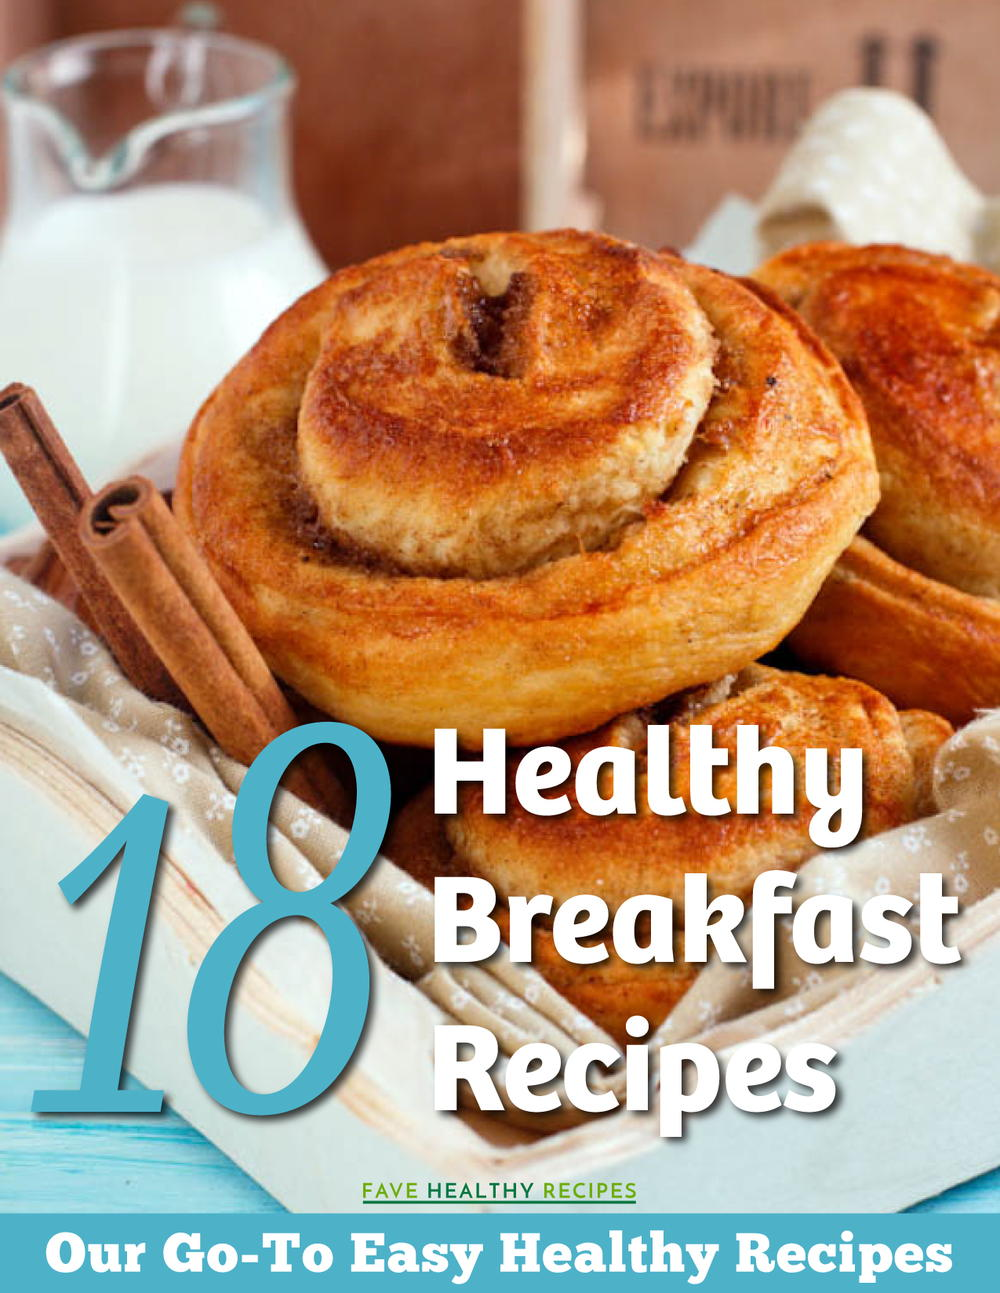 18 healthy breakfast recipes our go to easy healthy recipes 18 healthy breakfast recipes our go to easy healthy recipes favehealthyrecipes forumfinder Gallery